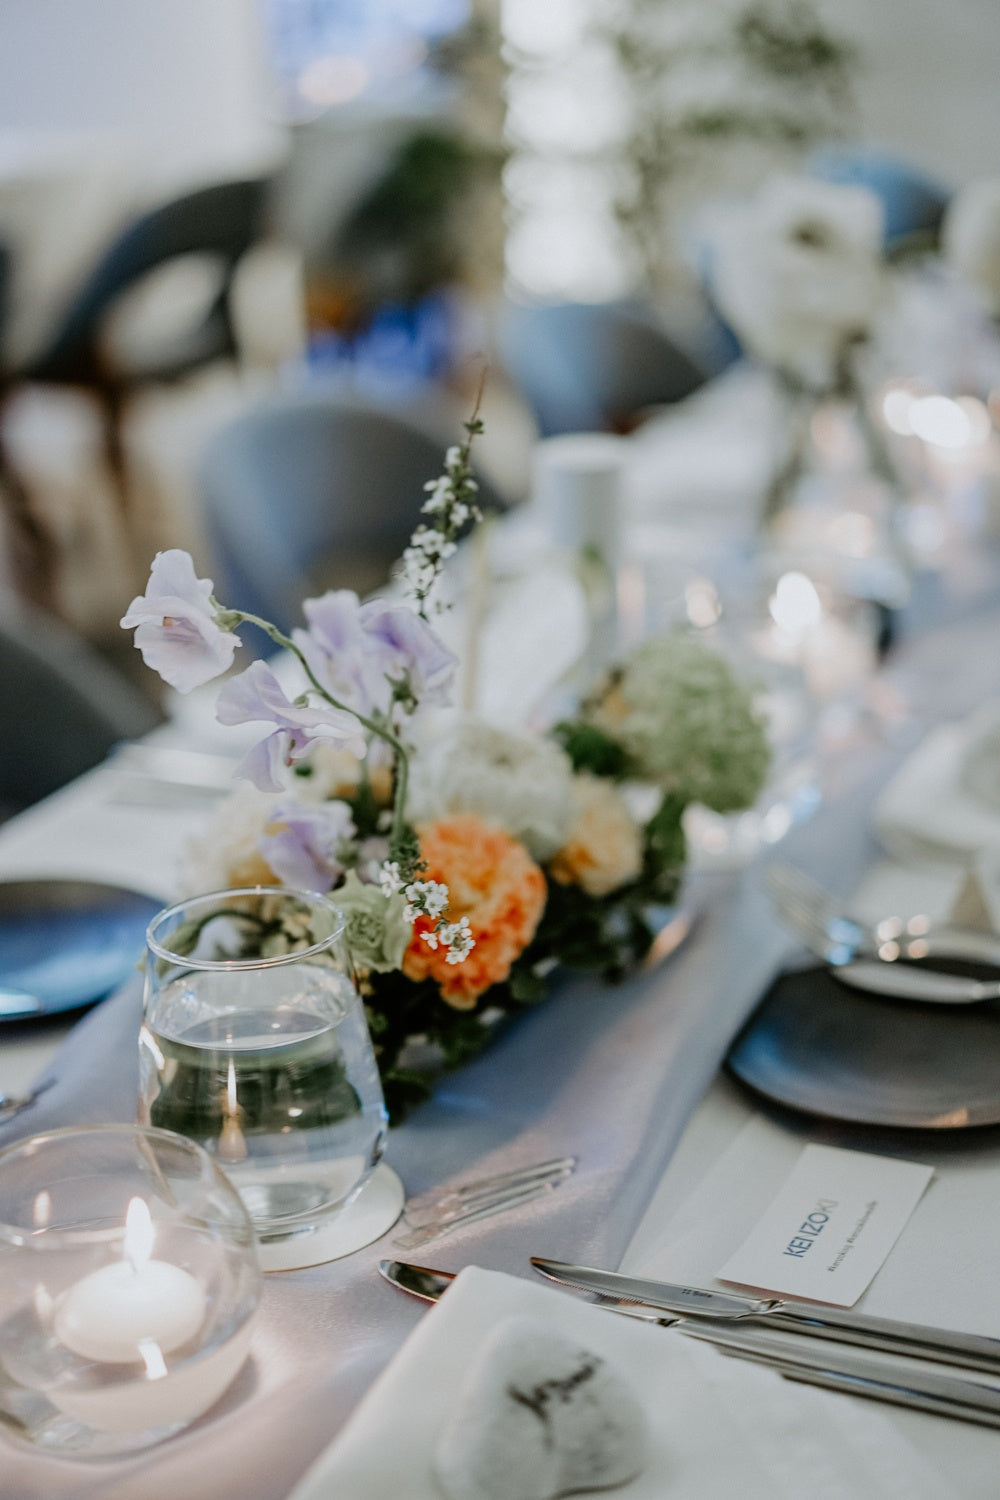 Drinking glass and candles next to purple and orange flower centerpiece